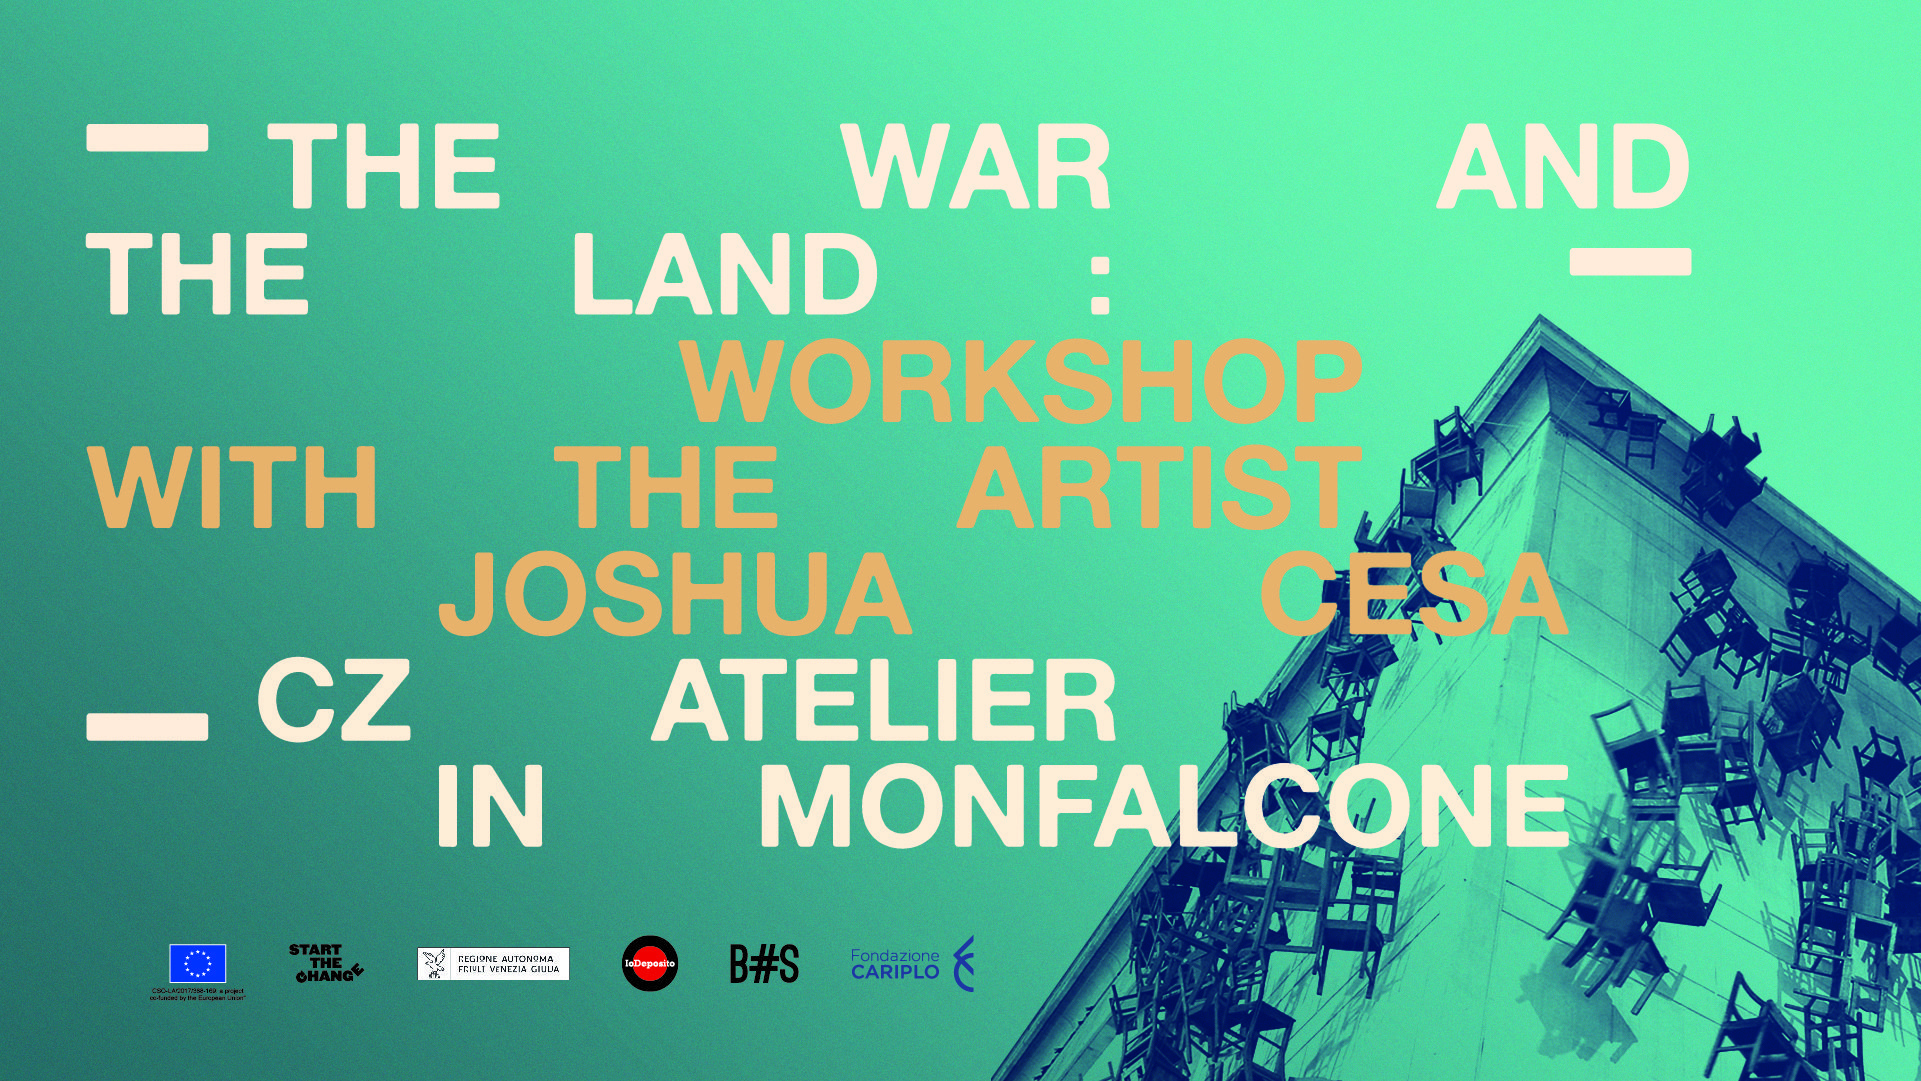 The War & the Land Atelier with Joshua Cesa